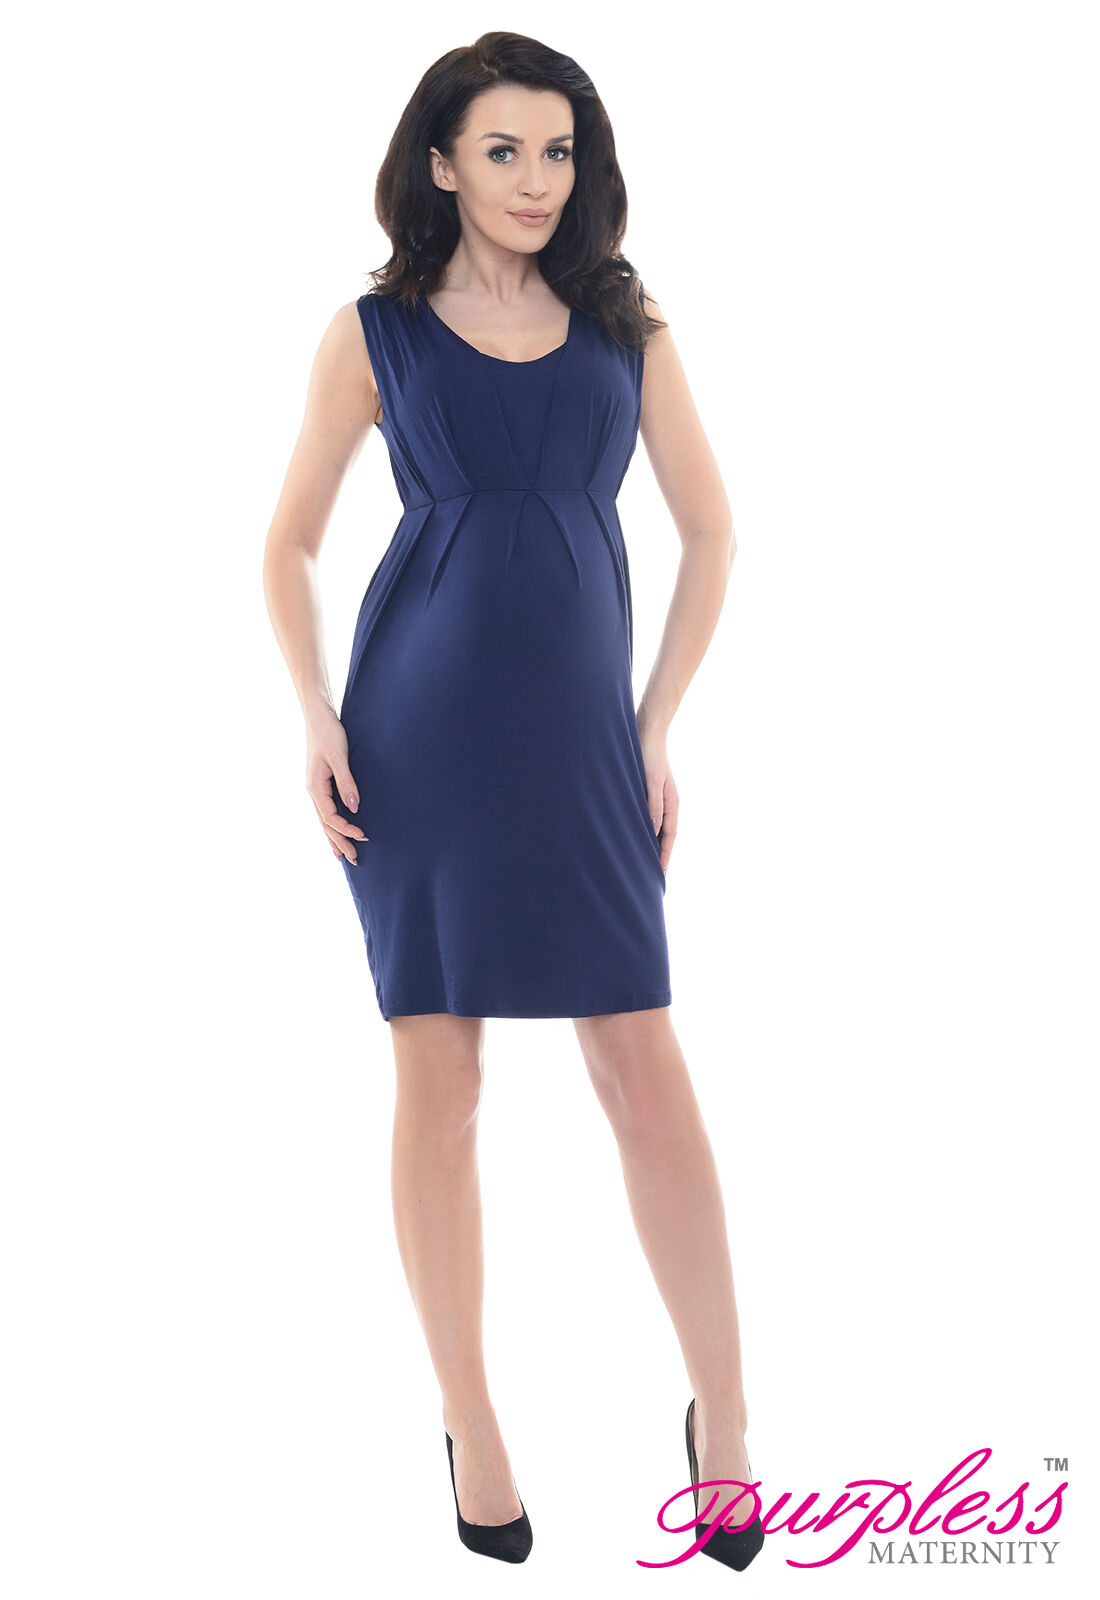 Purpless maternity stunning sleeveless v neck pregnancy dress top picture 3 of 4 ombrellifo Image collections